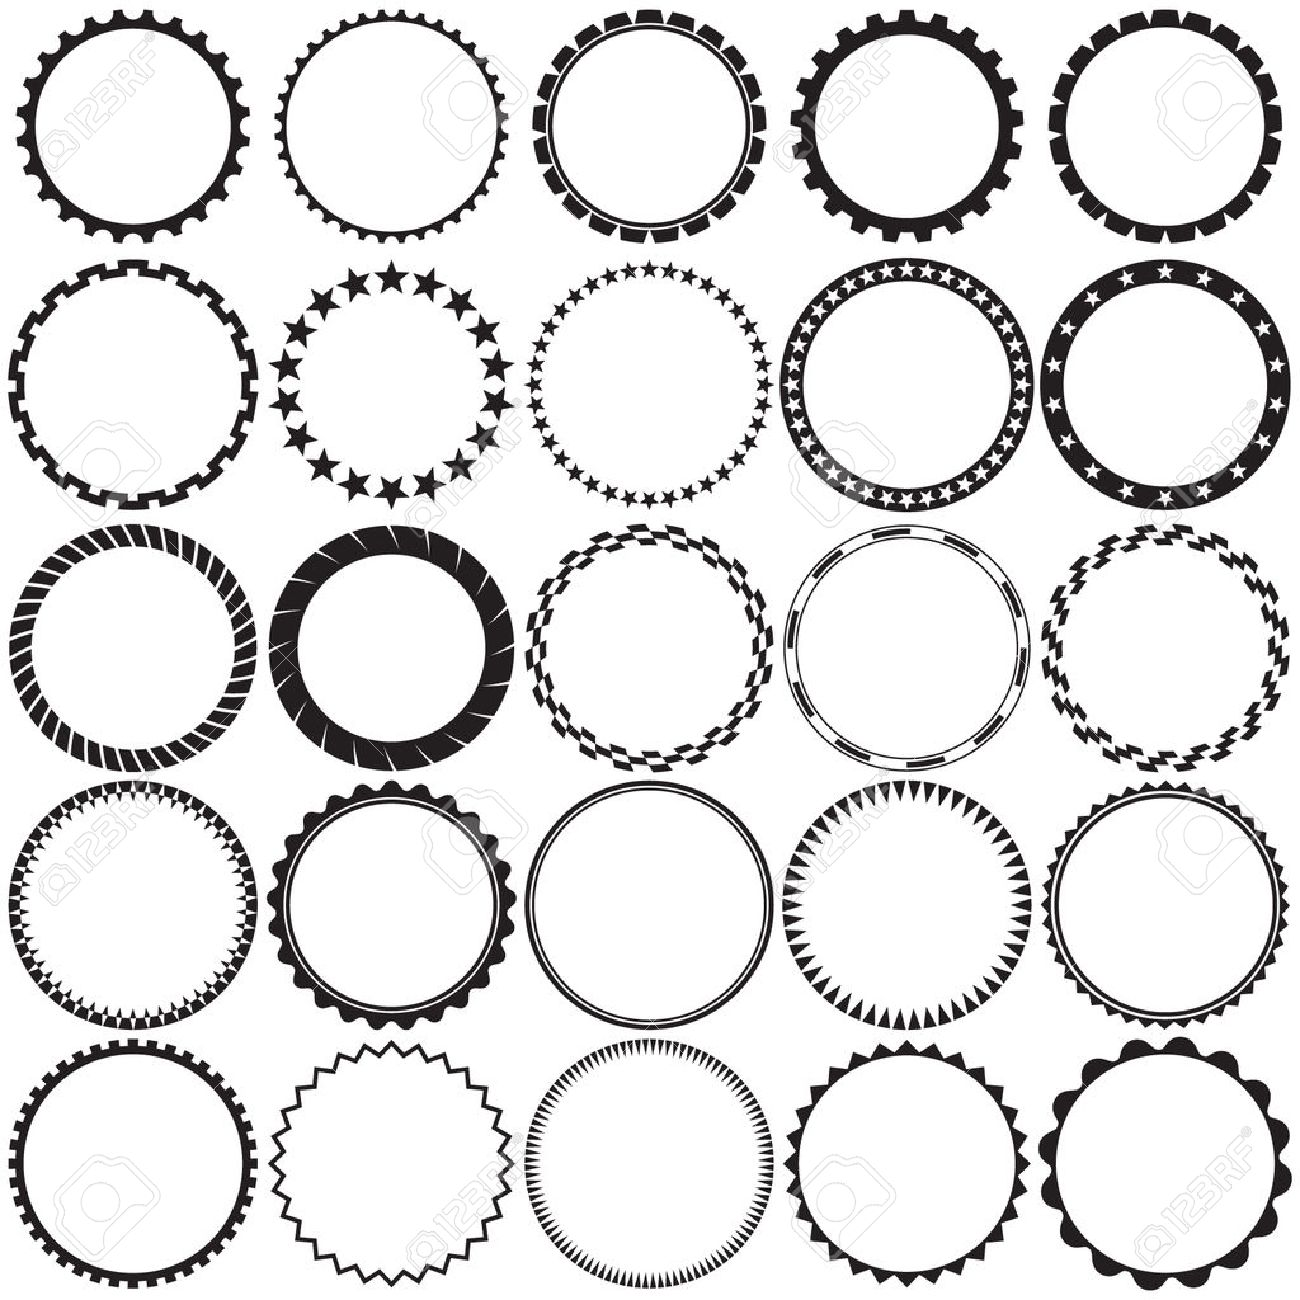 Circle clipart round frame - Pencil and in color circle clipart ...